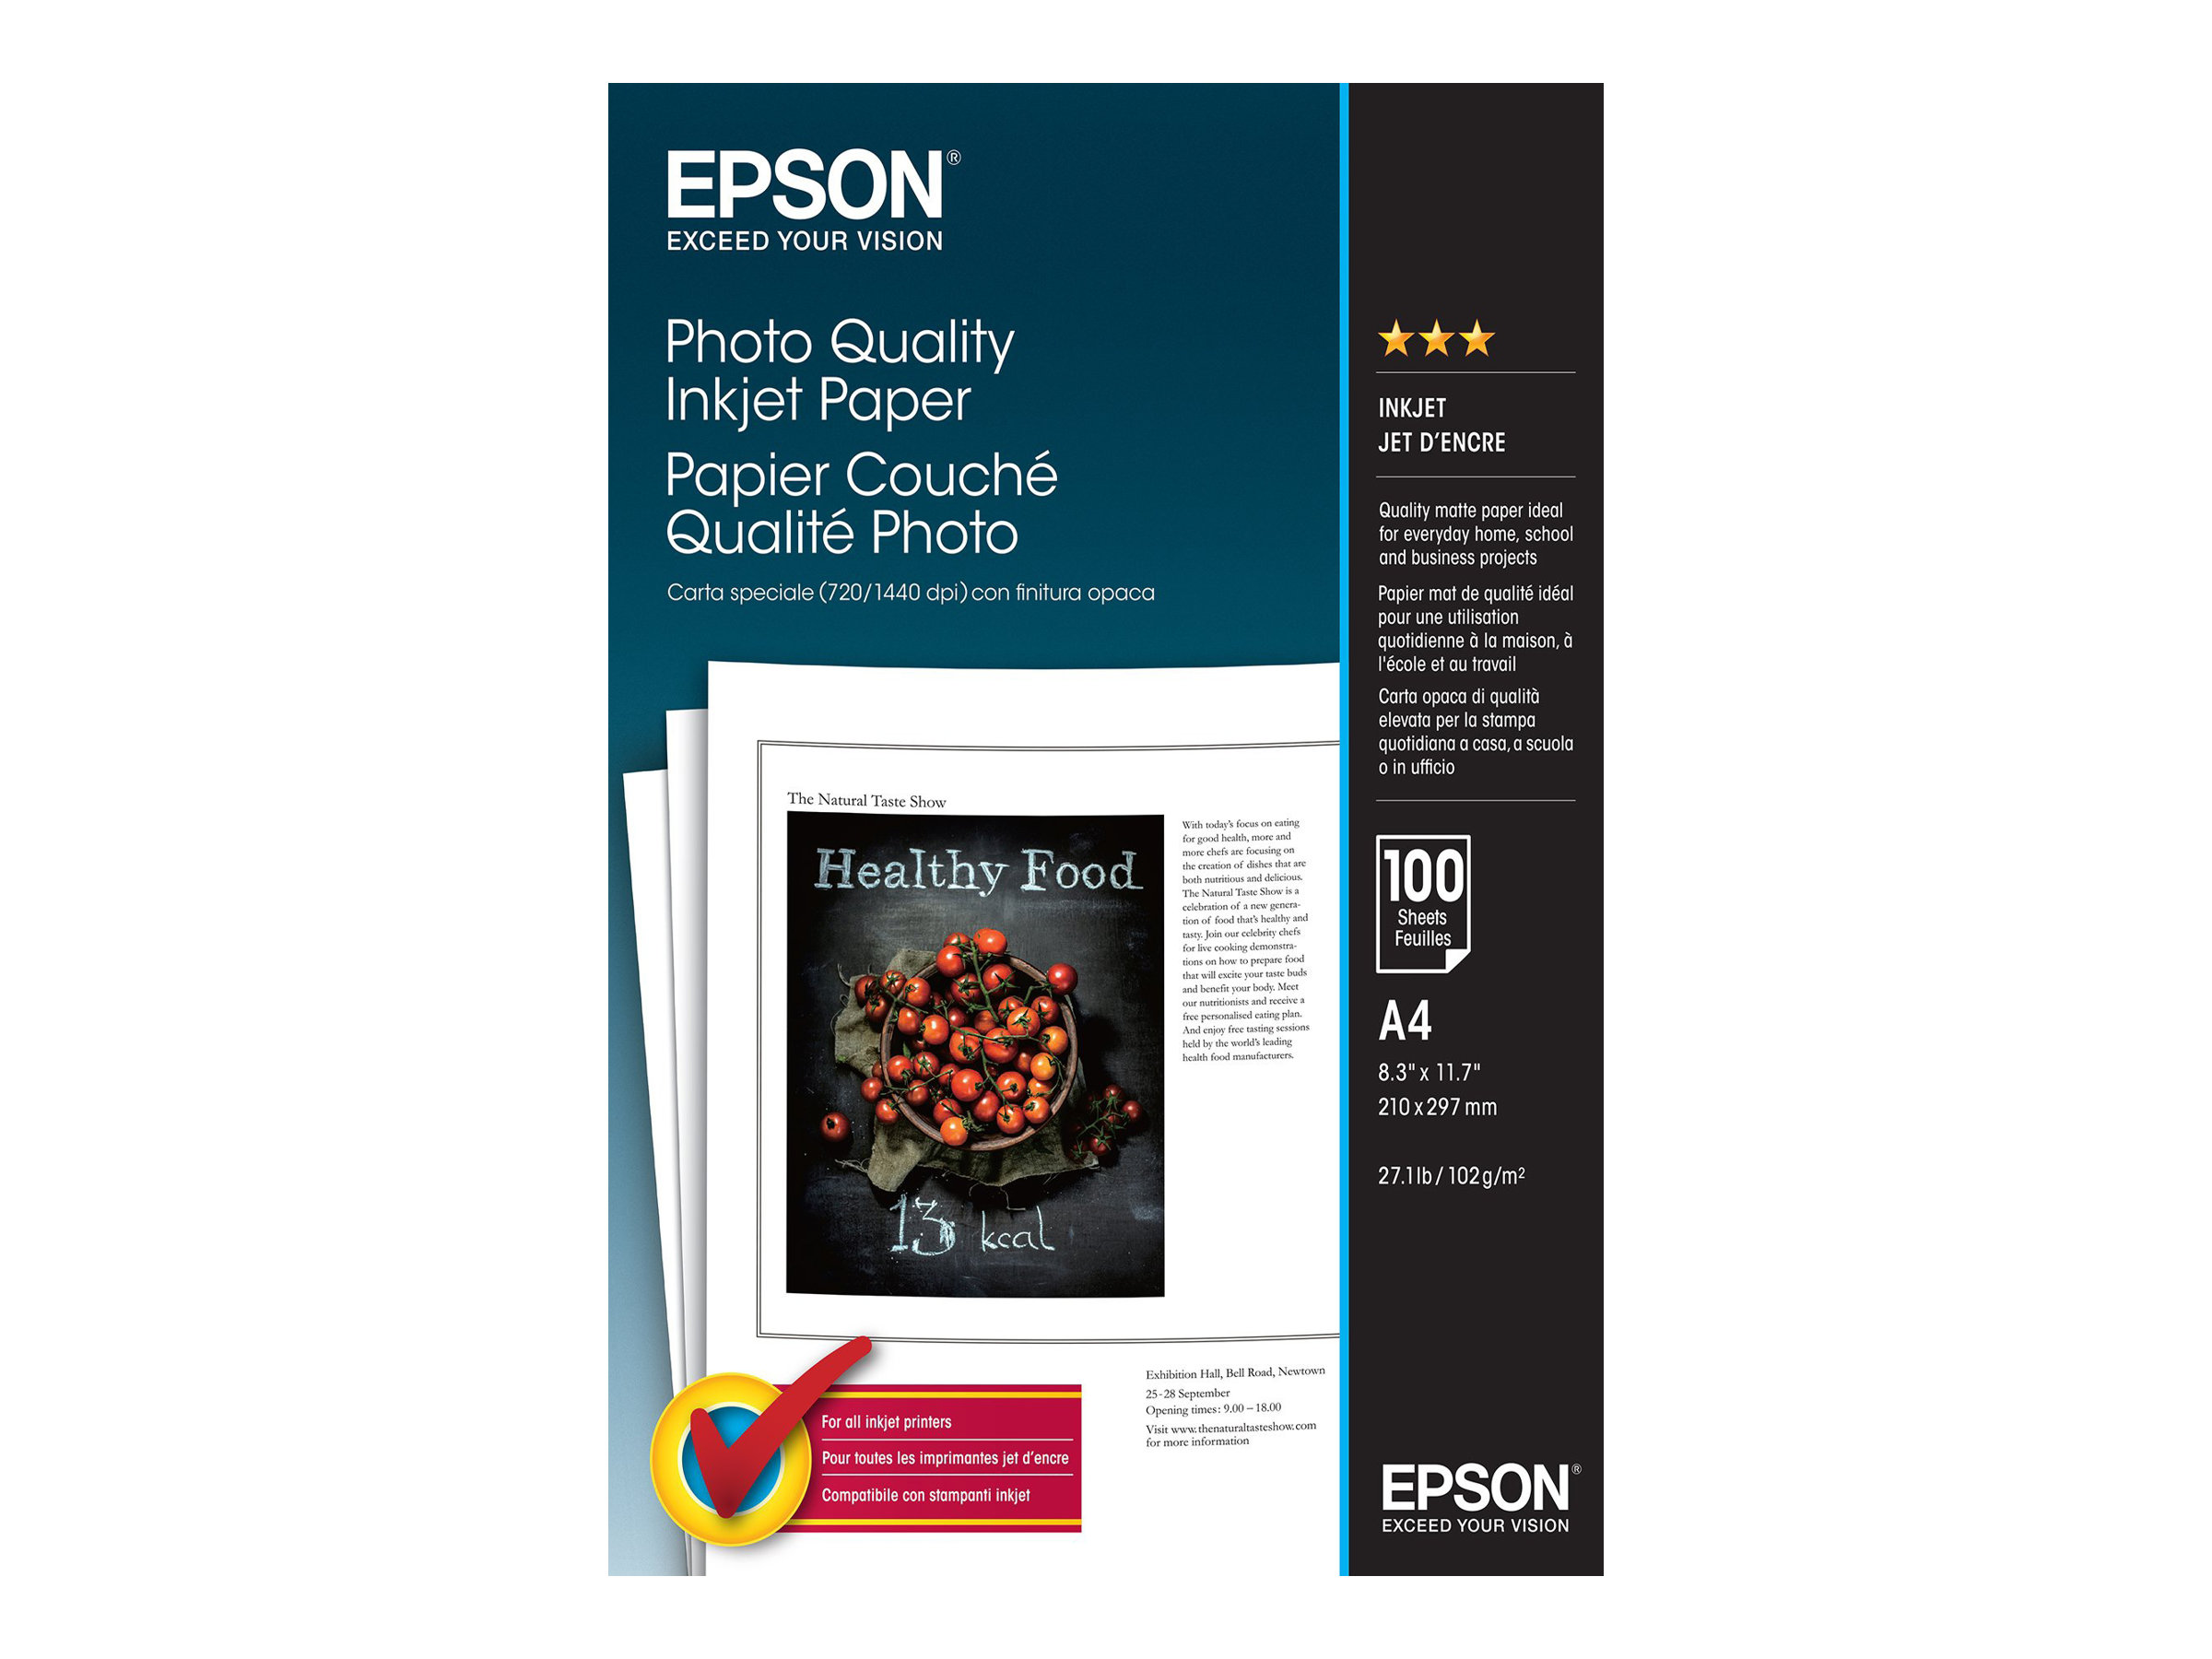 Epson Photo Quality Ink Jet Paper - Matt - beschichtet - Pure White - A4 (210 x 297 mm) - 102 g/m²